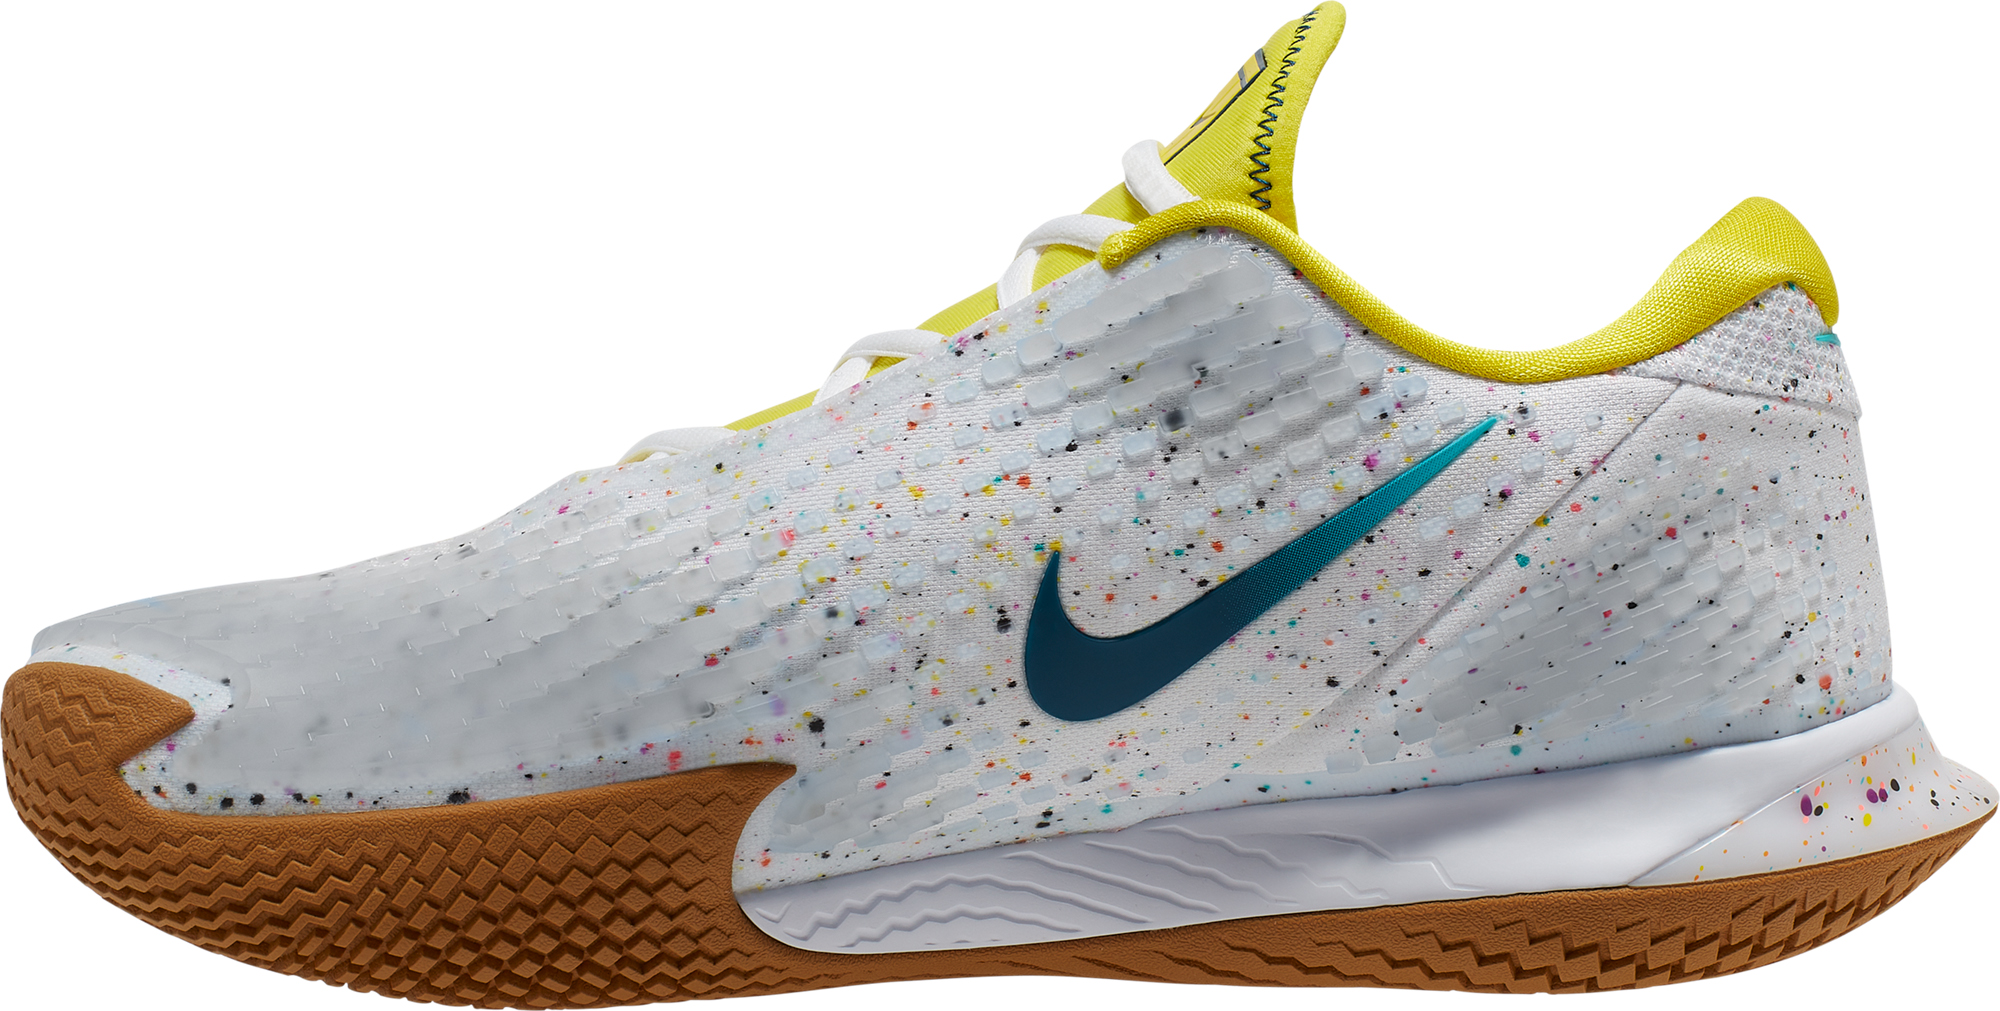 Nike Кроссовки мужские Nike Court Air Zoom Vapor Cage 4, размер 40 nike кроссовки женские nike zoom cage 3 размер 41